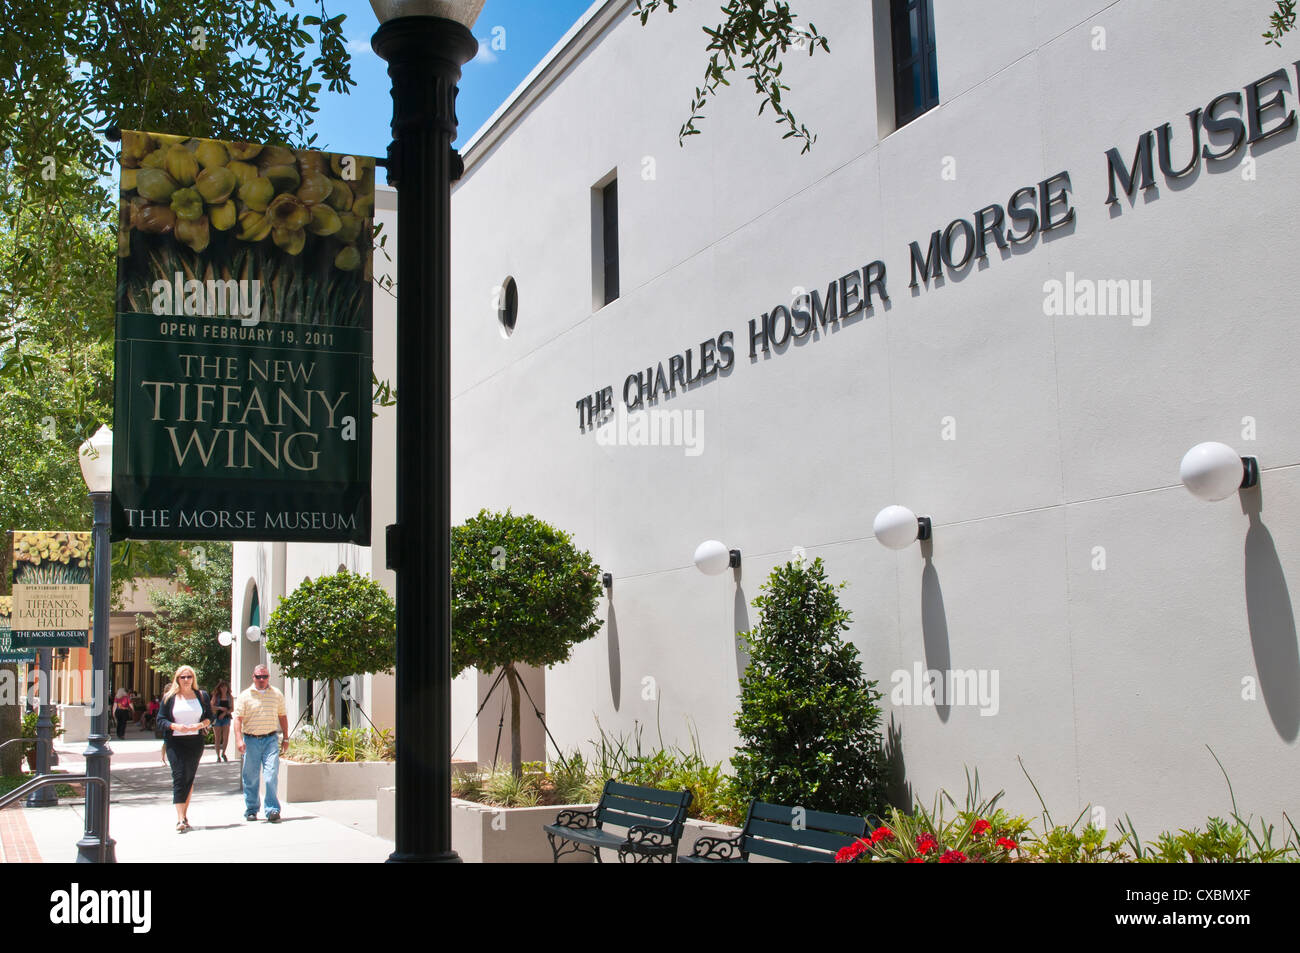 The Charles Hosmer Morse Museum, Winter Park, Florida, United States of America, North America - Stock Image